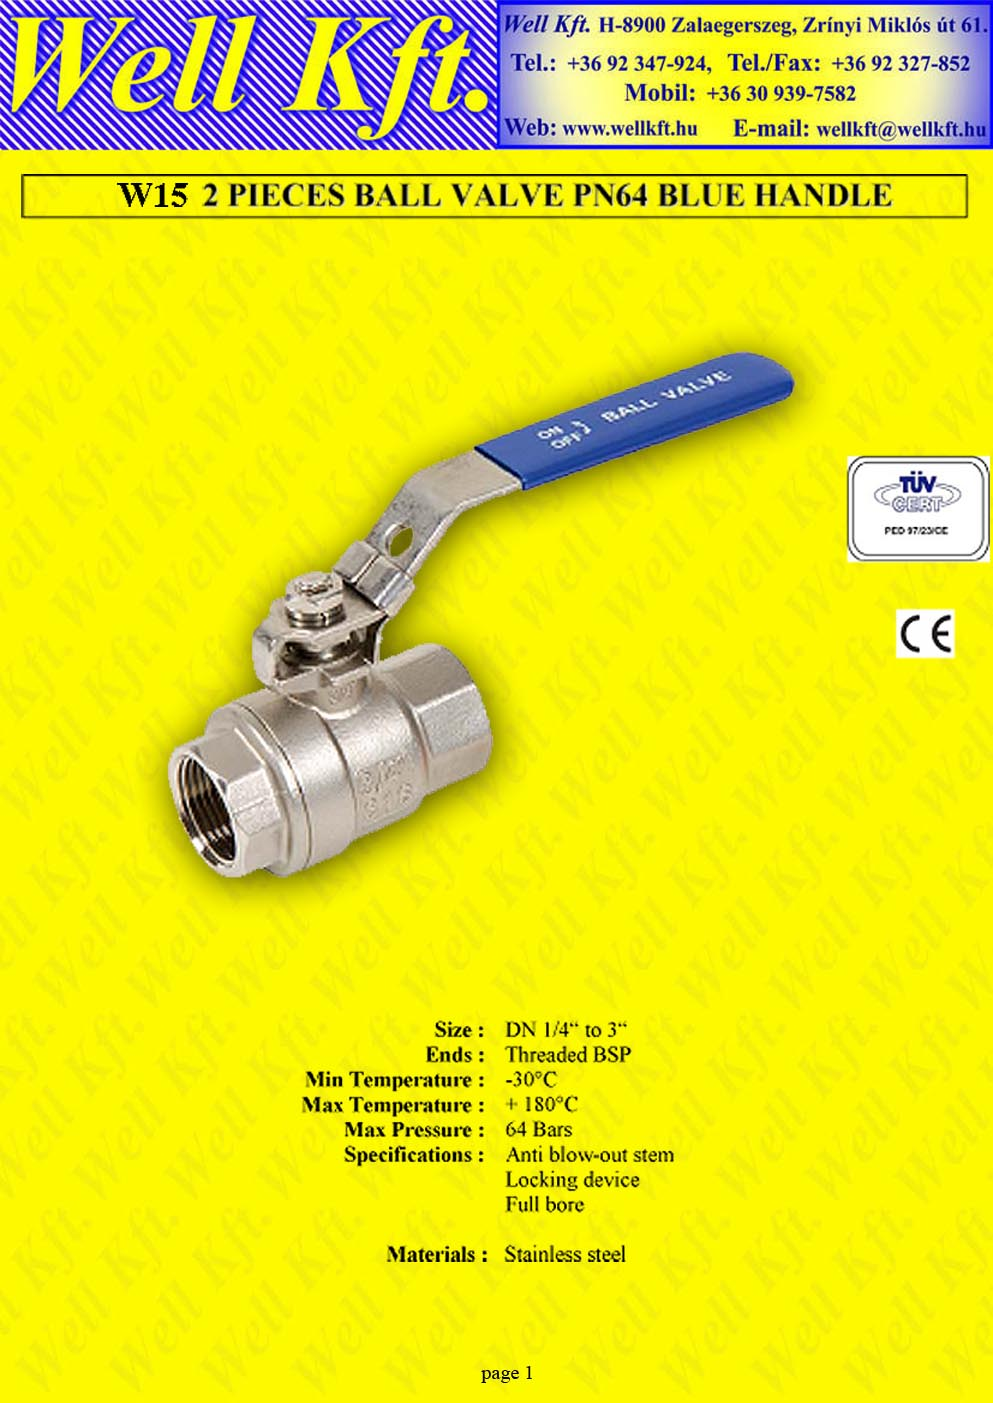 2 pieces ball valve stainless steel, ff. PN 64 (1.)